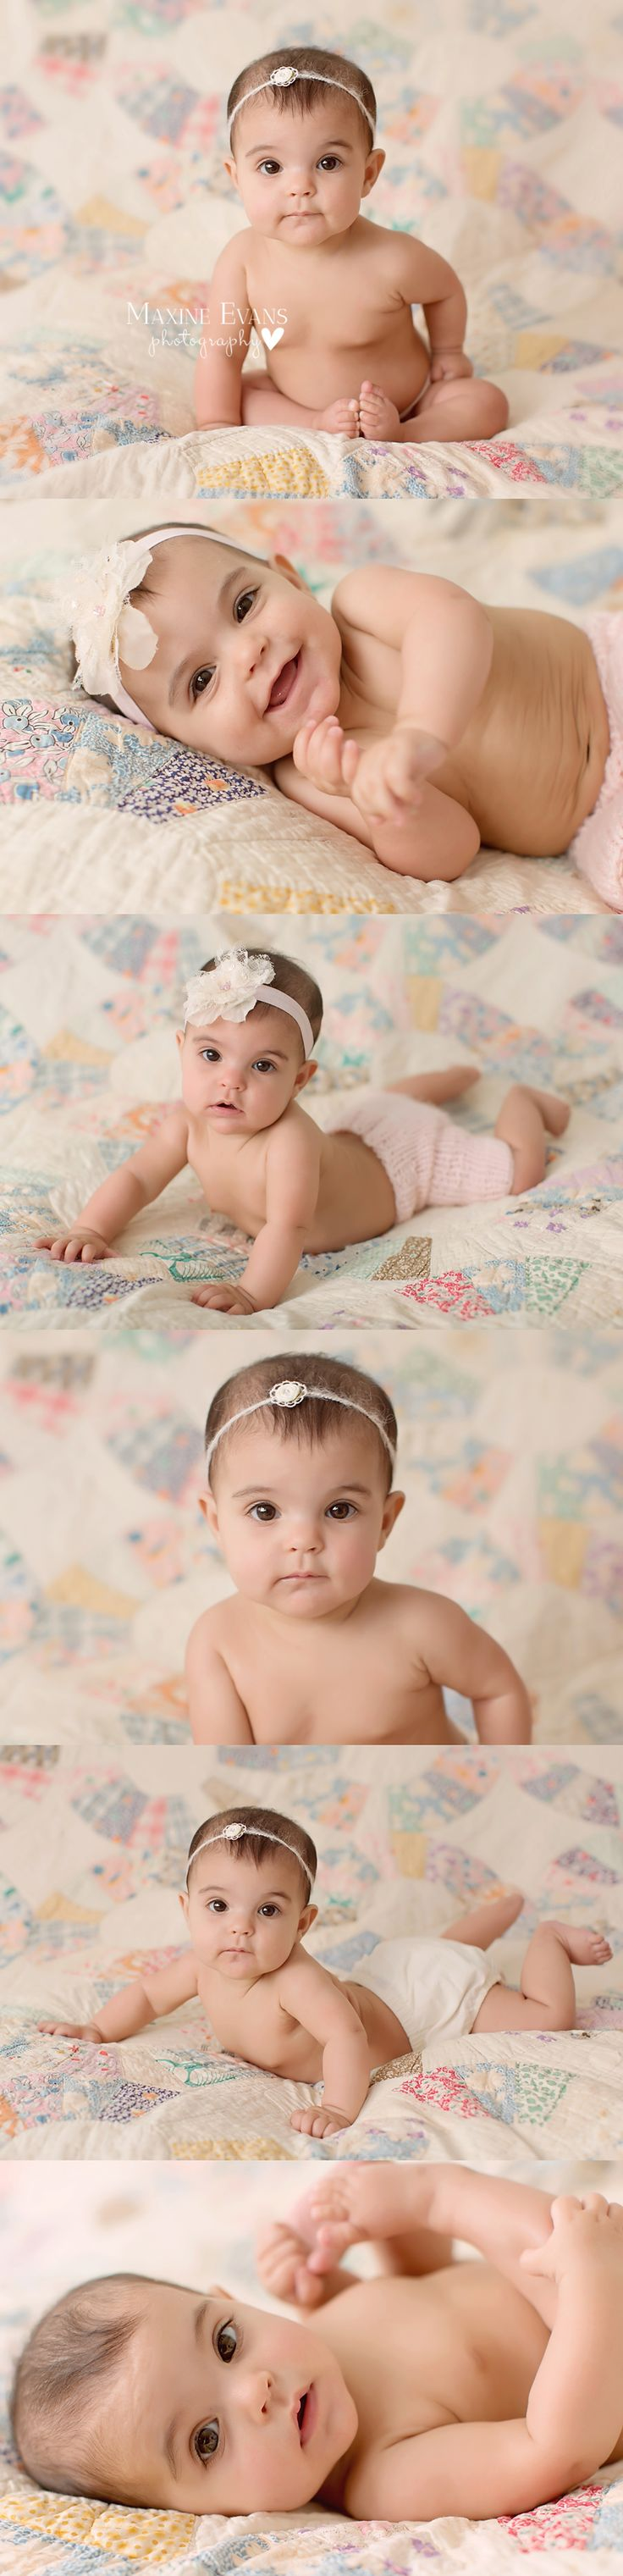 Milestone Pictures, 5 month old baby. Thousand Oaks Baby Photography. Los…